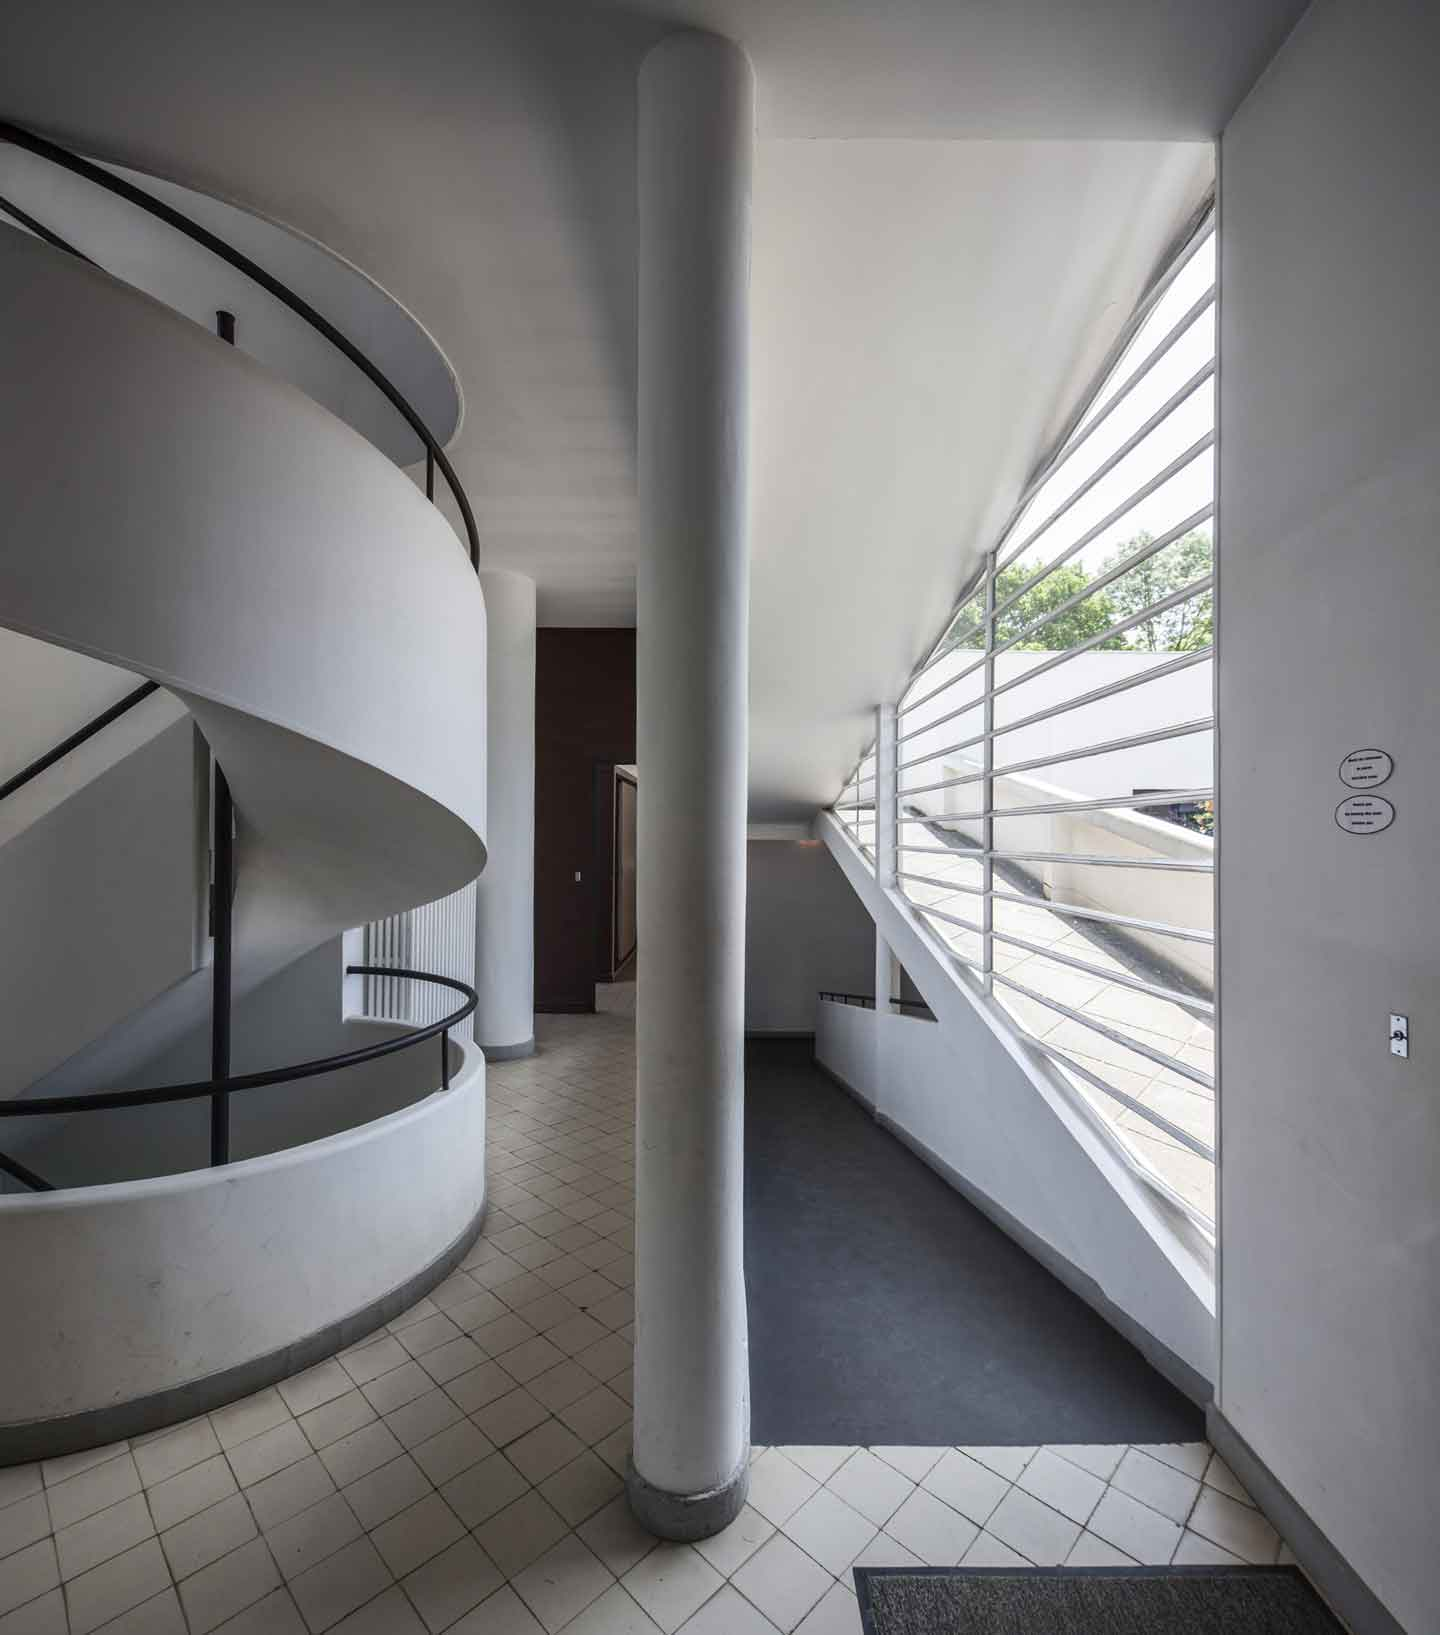 le corbusier villa savoye Completed in 1929 in poissy, france situated in poissy, a small commune outside of paris, is one of the most significant contributions to modern architecture in the 20th century, villa.